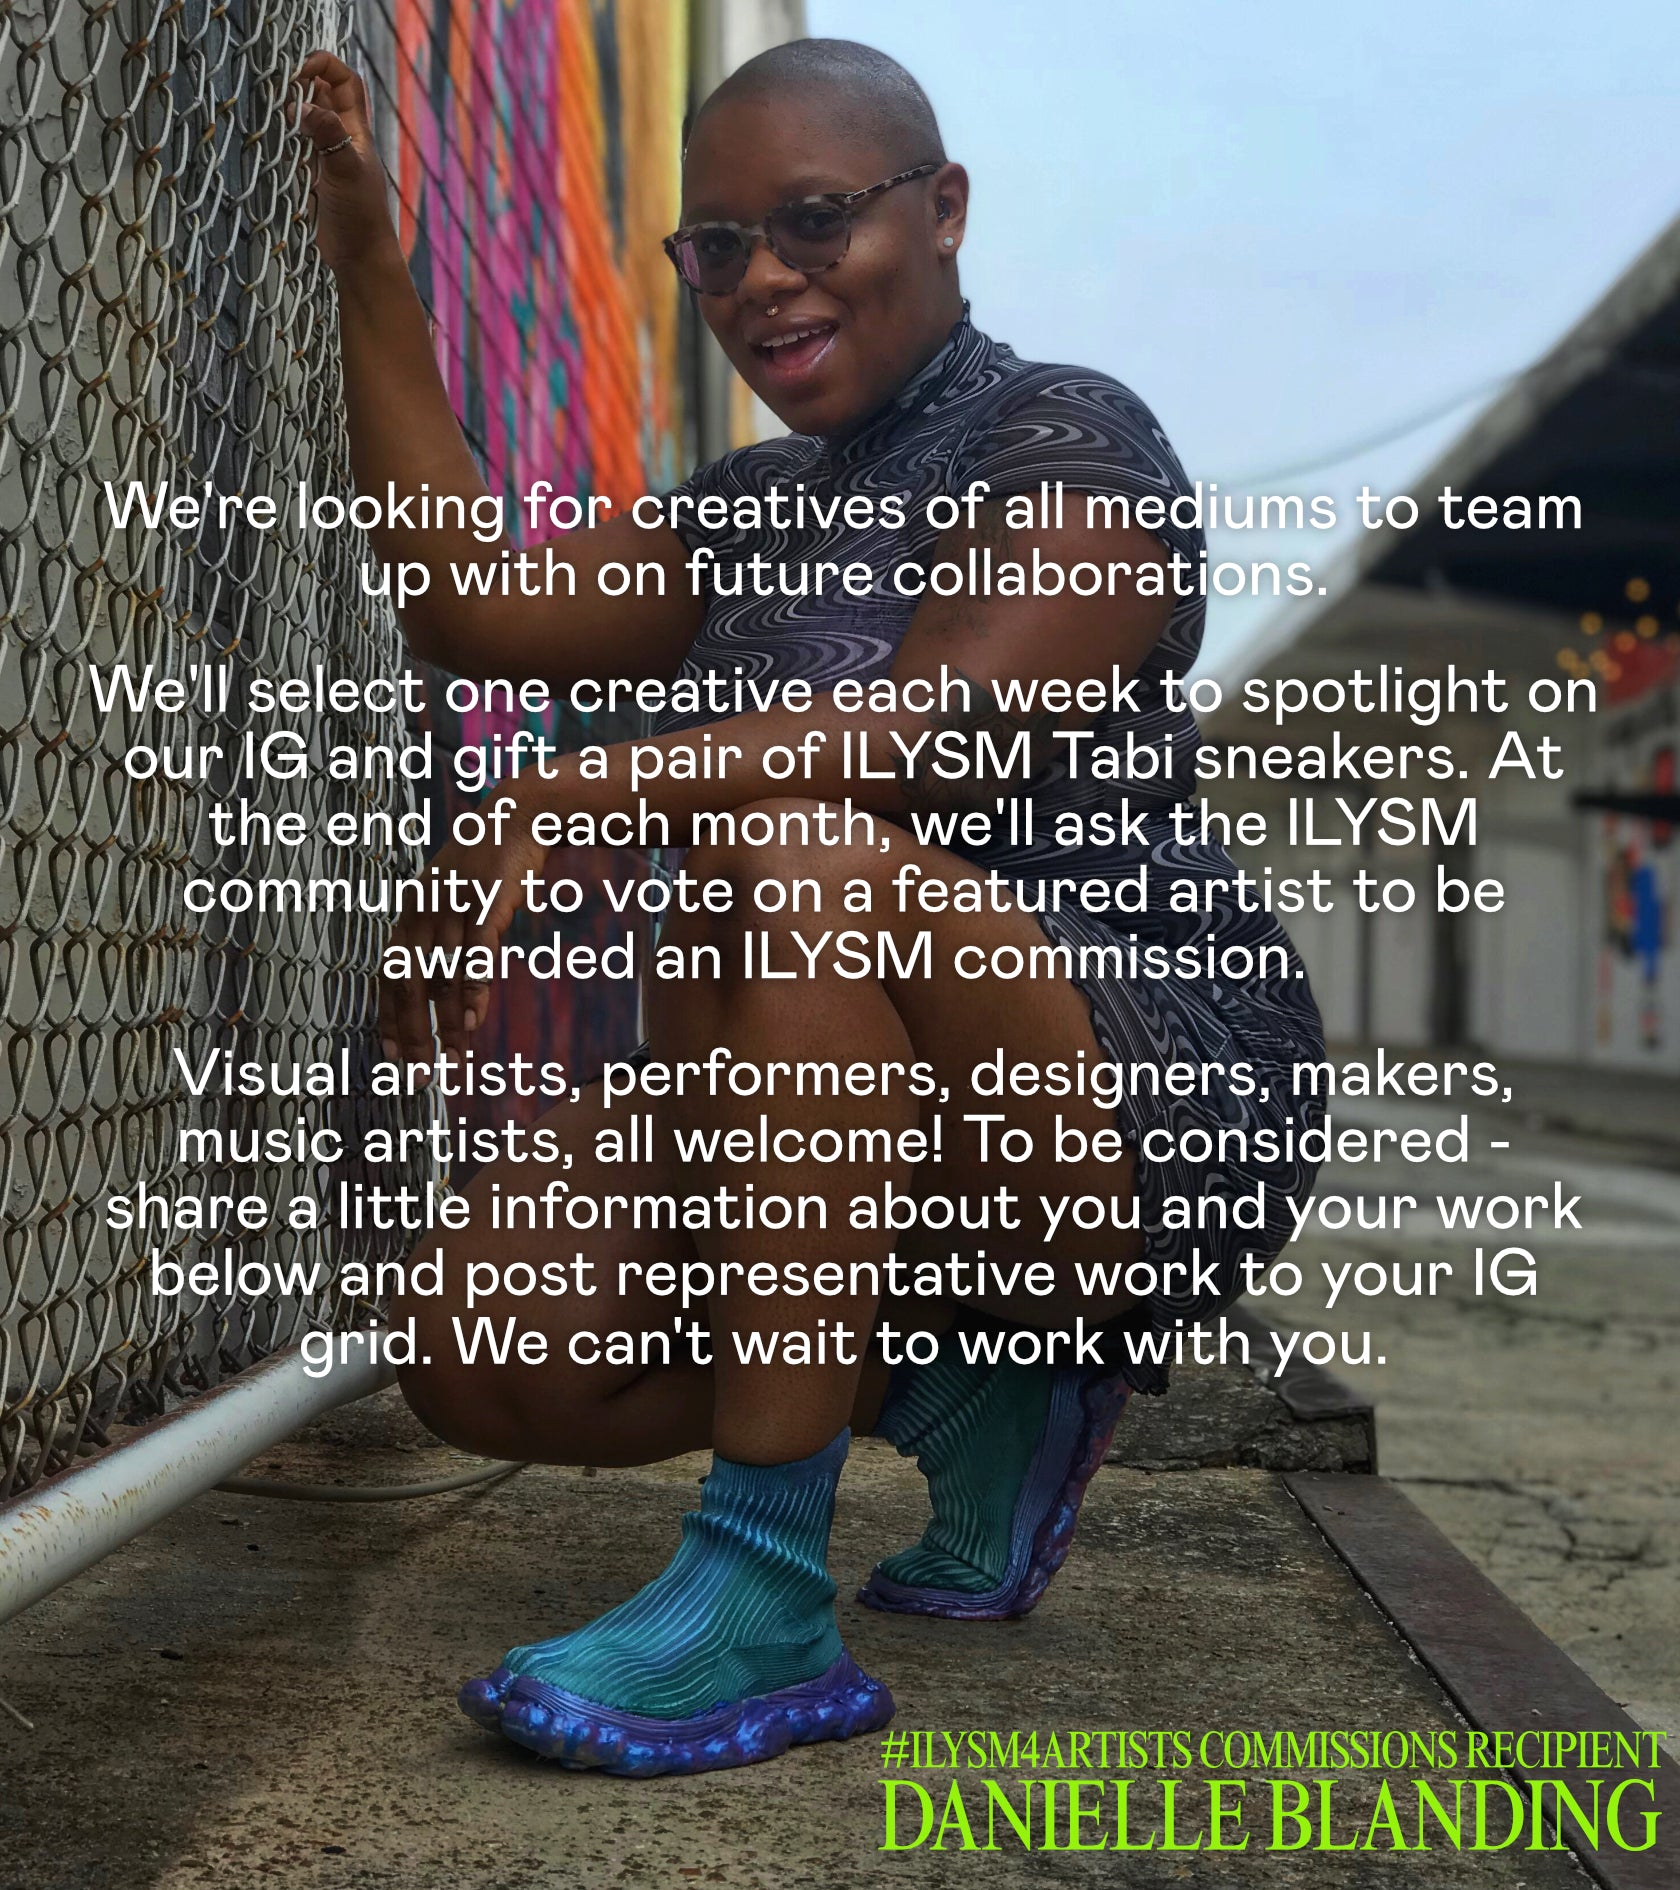 We're looking for creatives of all mediums to team up with on future collaborations.